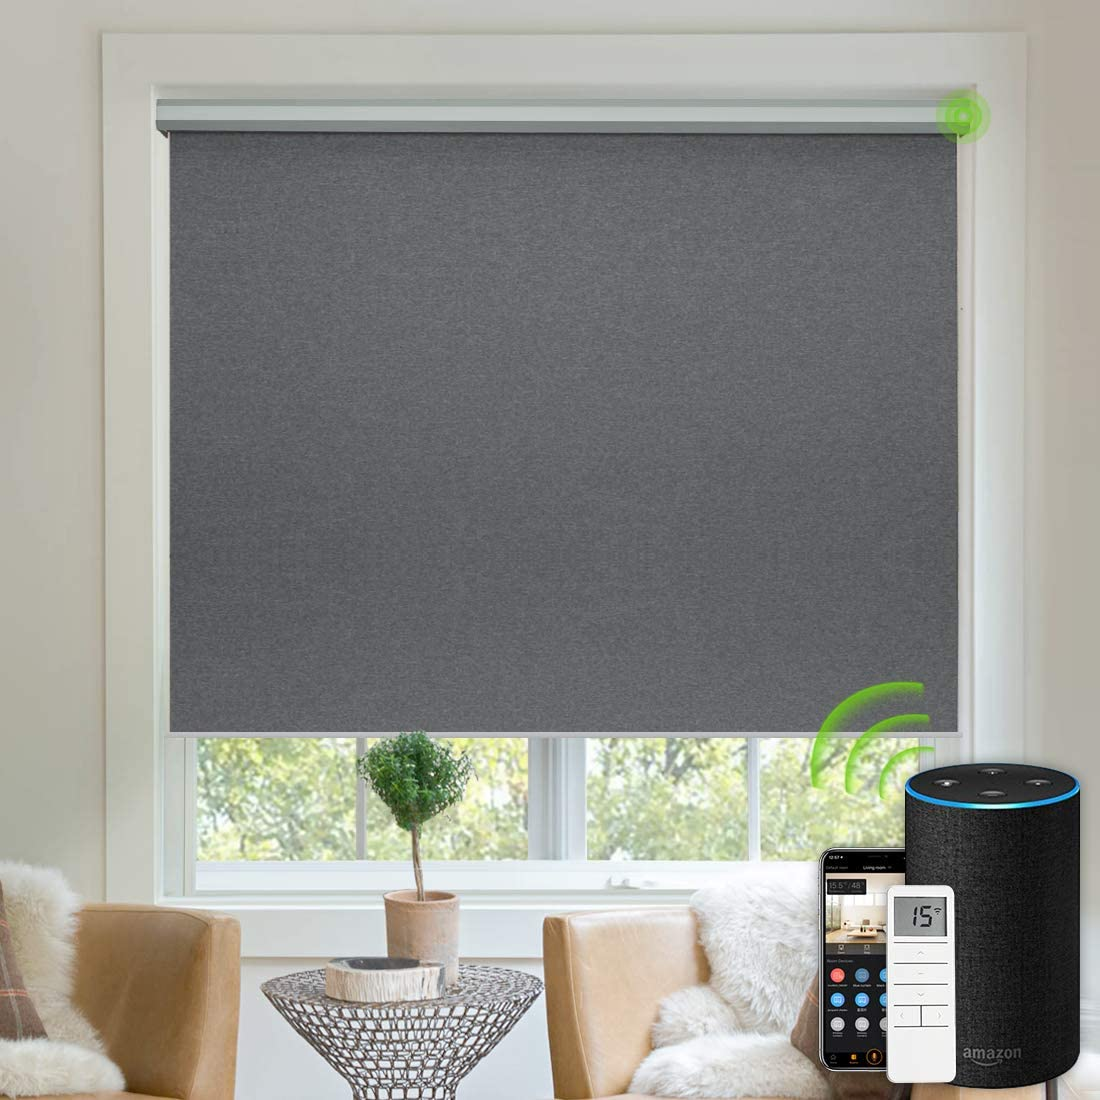 Yoolax Free-Stop Blackout Roller Shade Fabric Material Motorized Blind Cordless Remote Control Room Darkening Privacy Window Blind with Valance Dark Grey